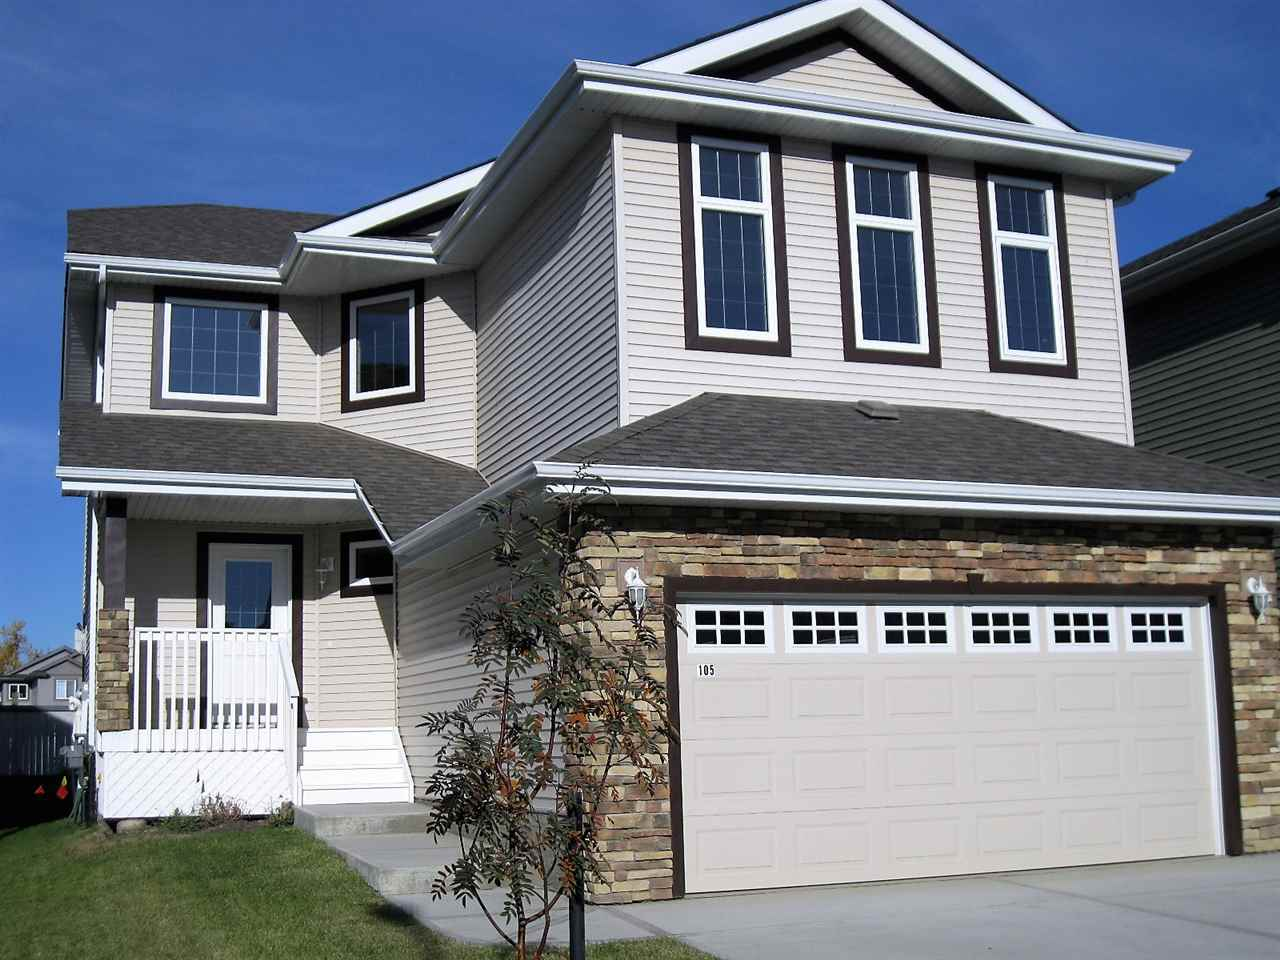 Main Photo: 105 Aspenglen Drive: Spruce Grove House for sale : MLS® # E4084570